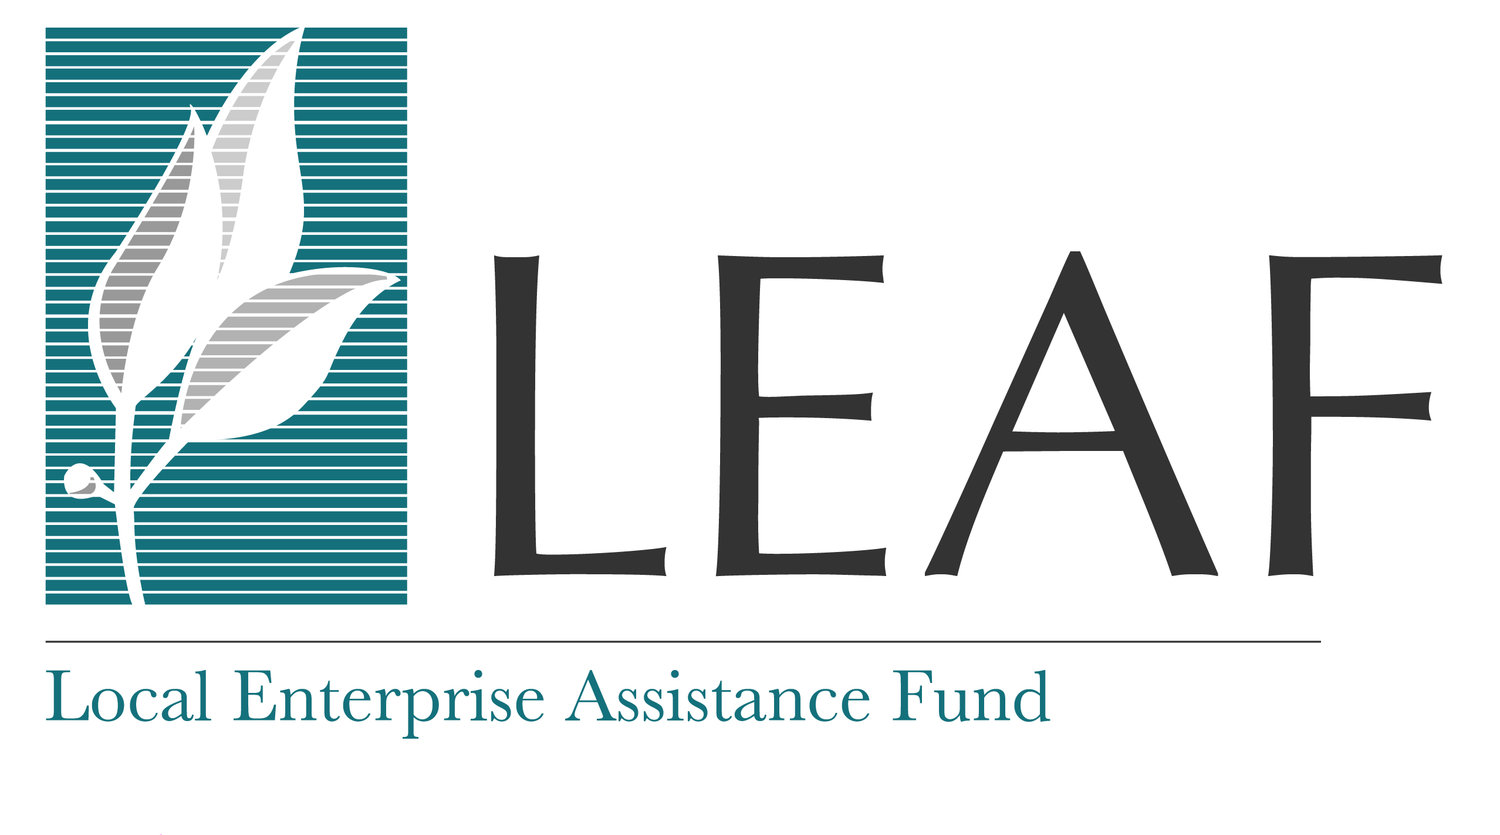 Leaf about about us focus areas our team board lending how to apply for investors portfolio impact contributions and investments prospectus featured businesses publicscrutiny Choice Image